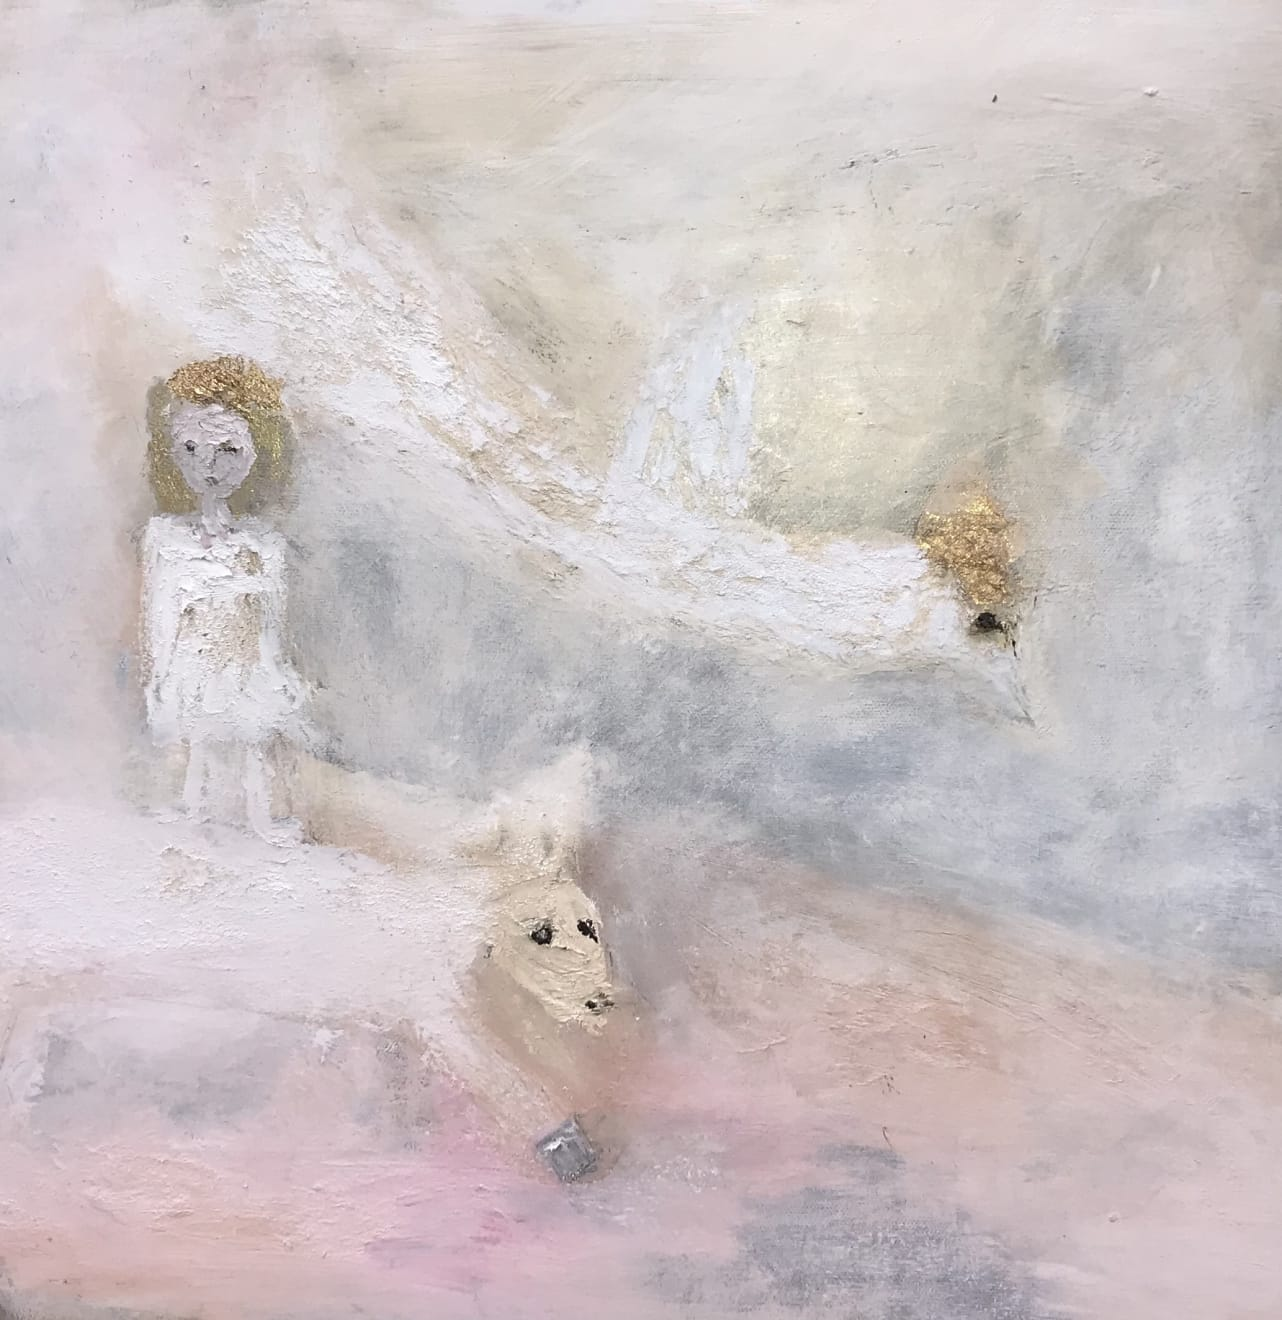 Hilary Herrmann A Simple Creed Oil on Canvas, Gold Leaf and Gold Pigment Original 45 x 45 cm $1800 £900